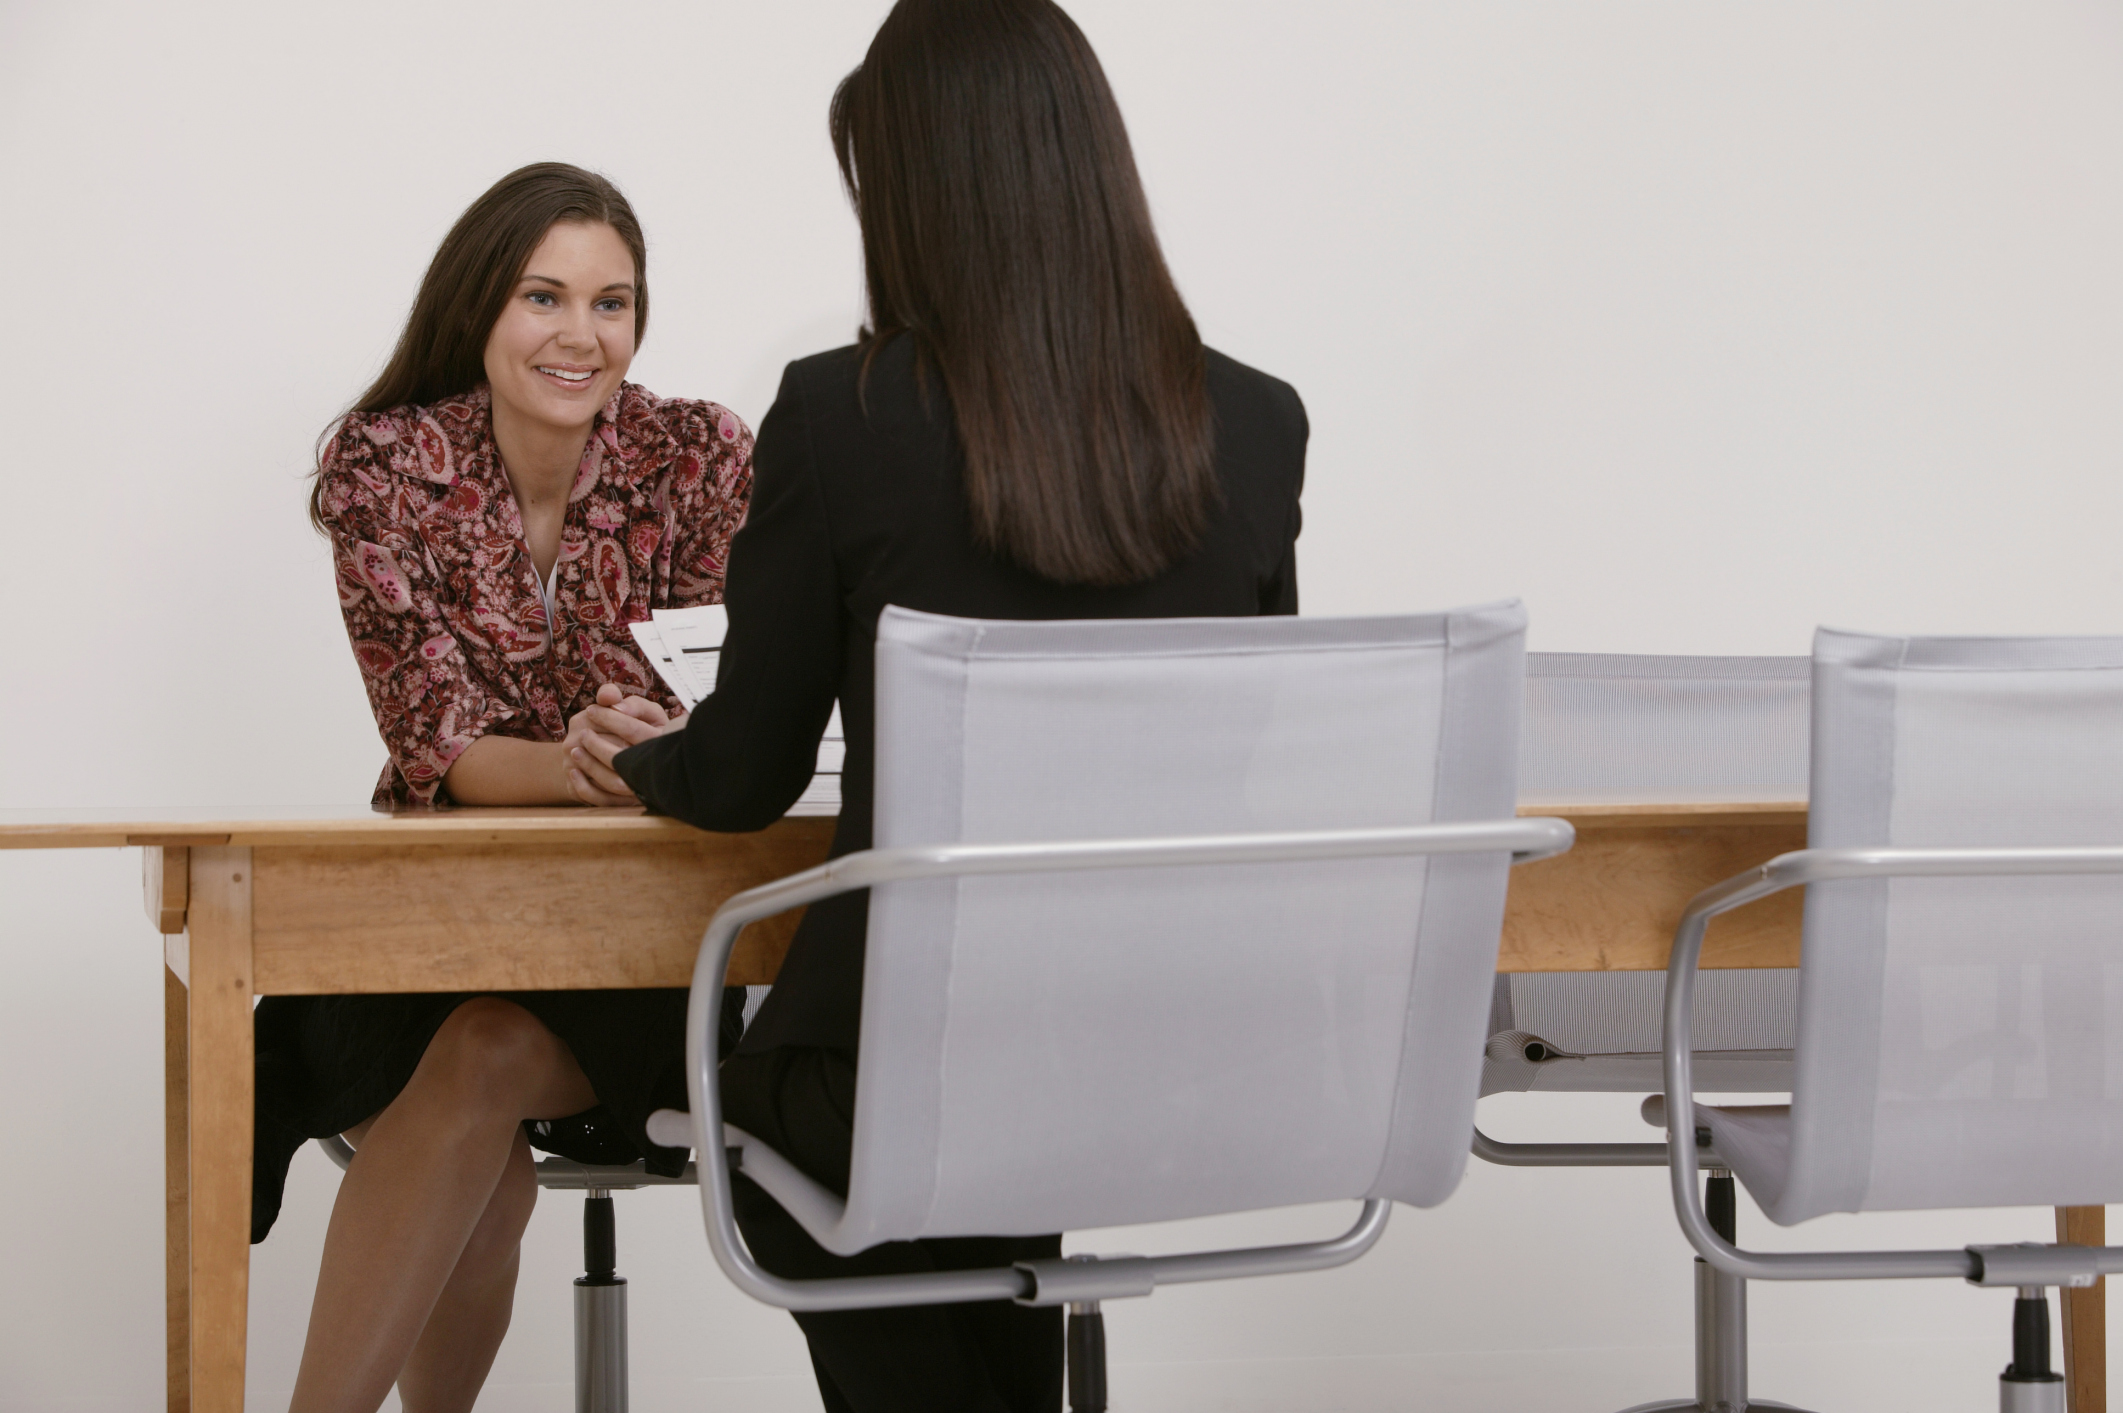 interview tips for an early childhood educator